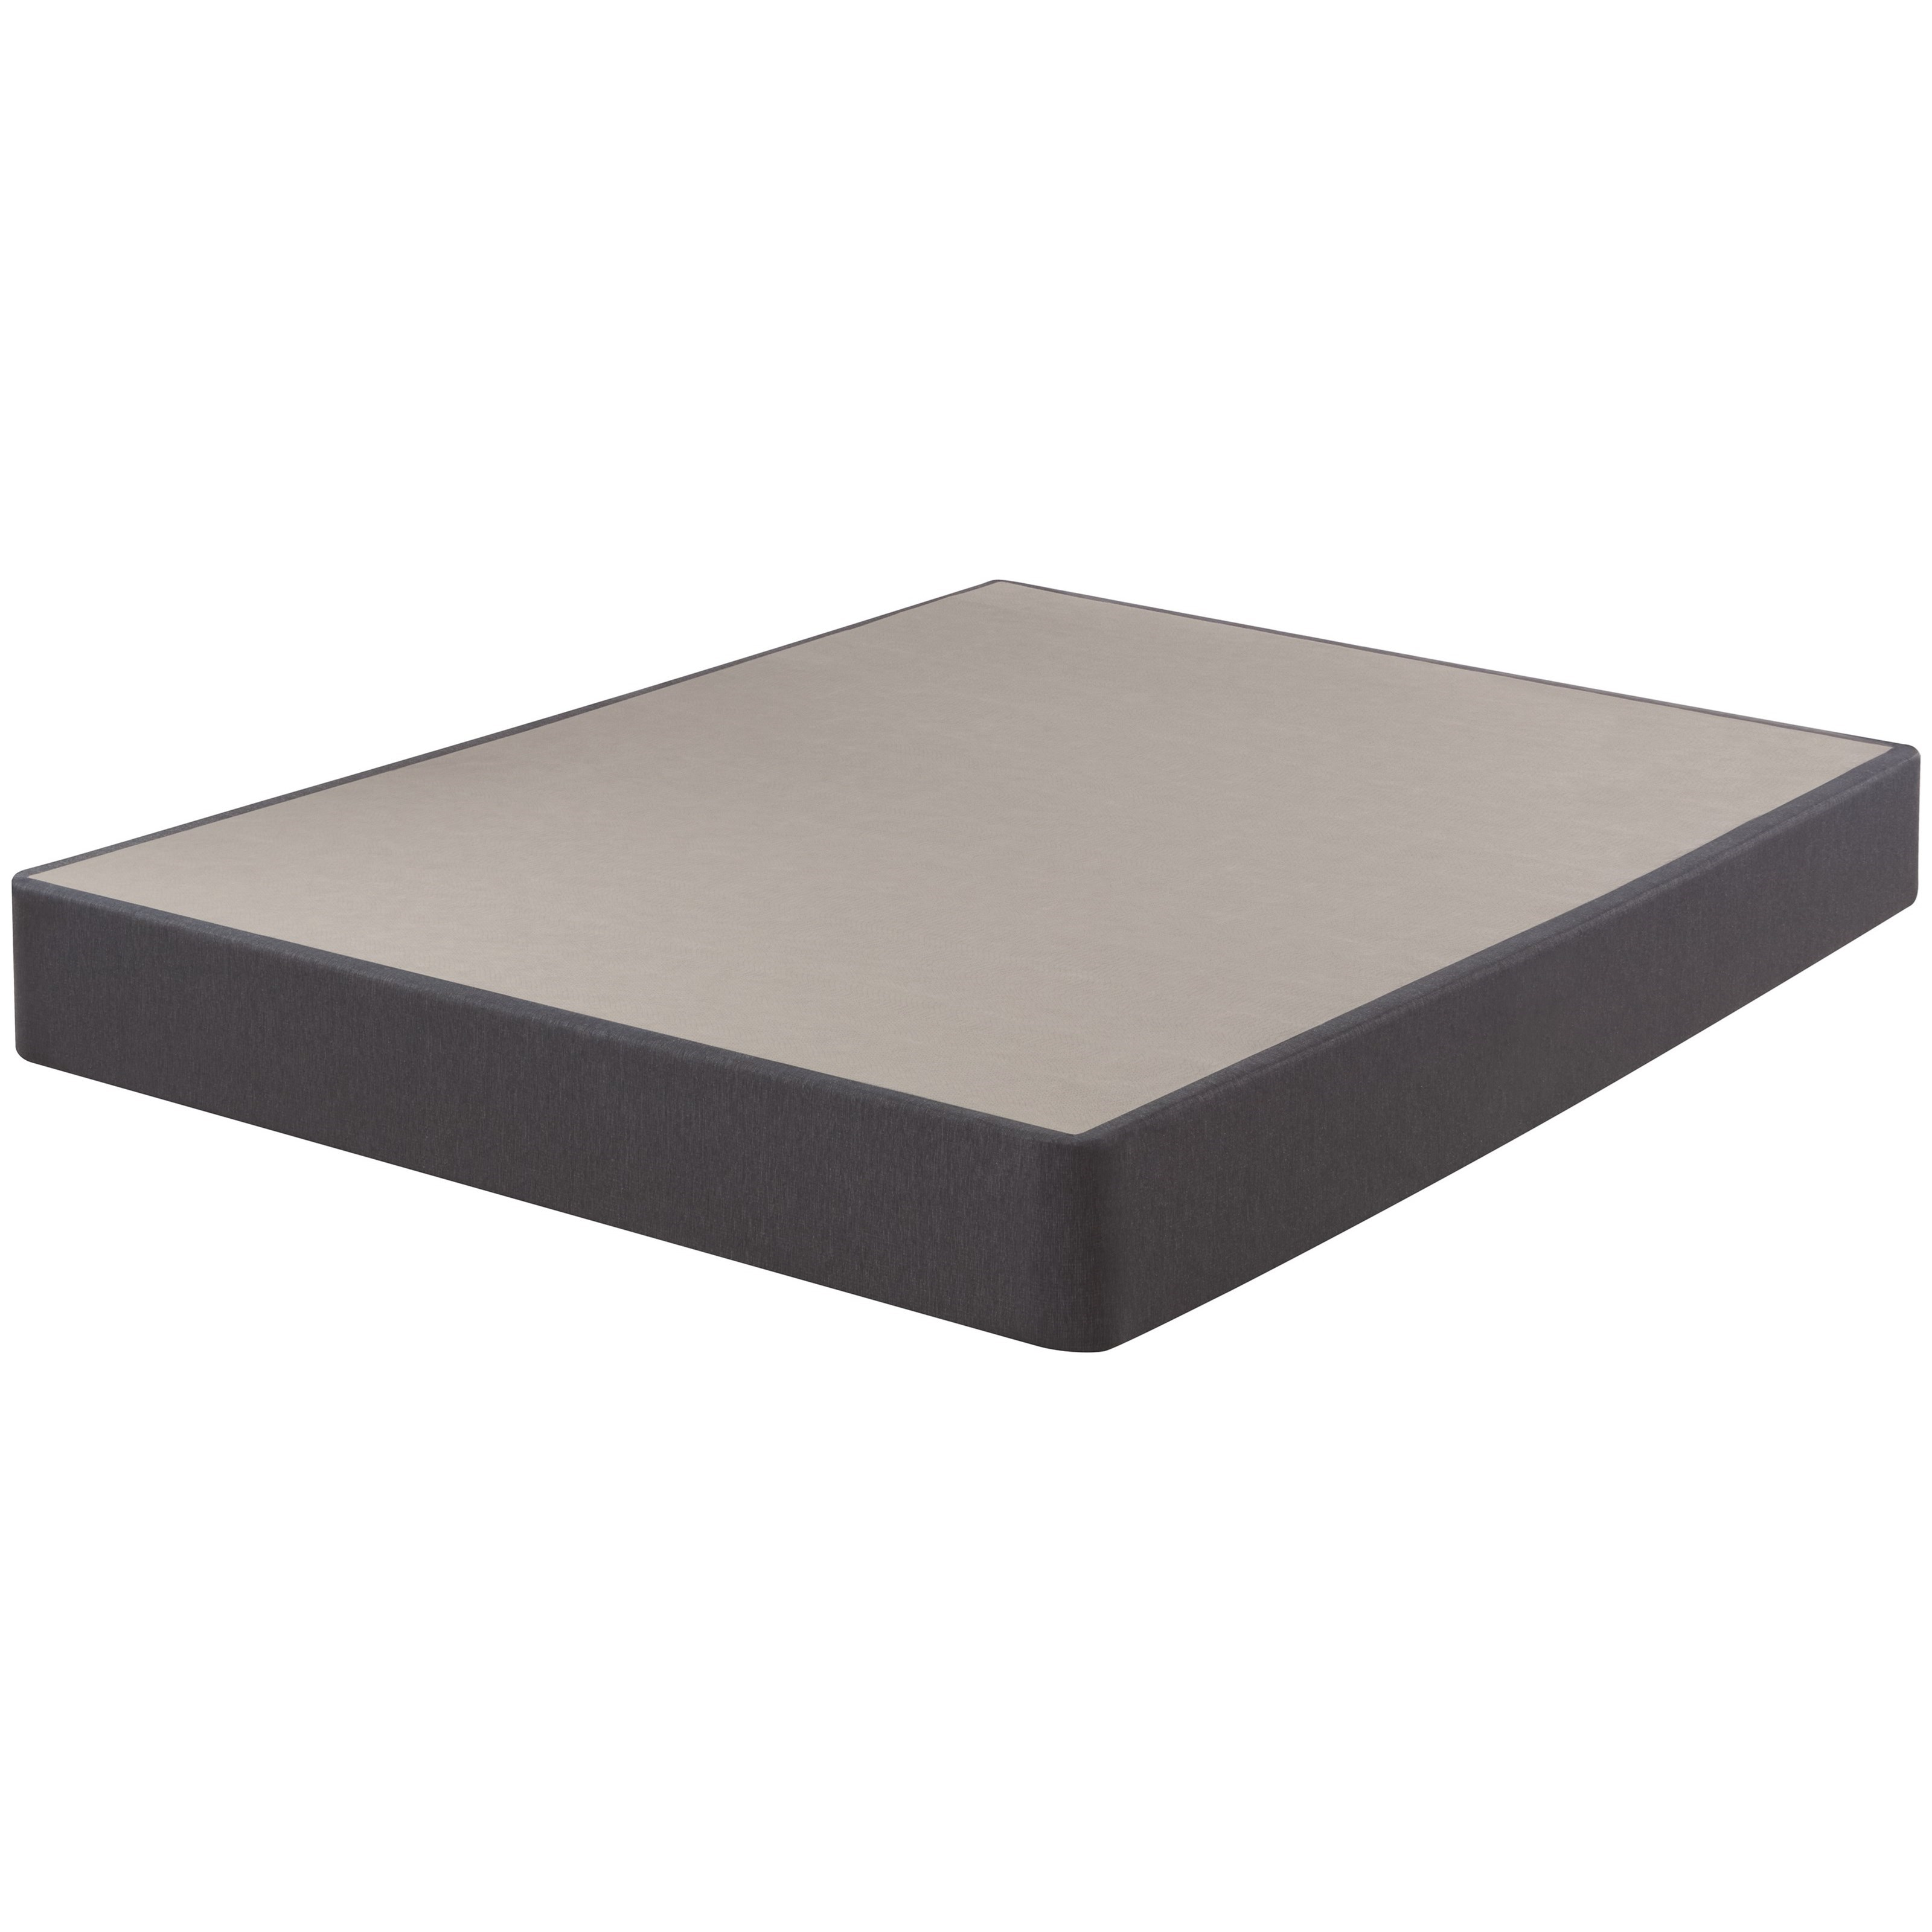 """2020 Perfect Sleeper Foundations Twin XL 9"""" High Profile Foundation by Serta at Prime Brothers Furniture"""